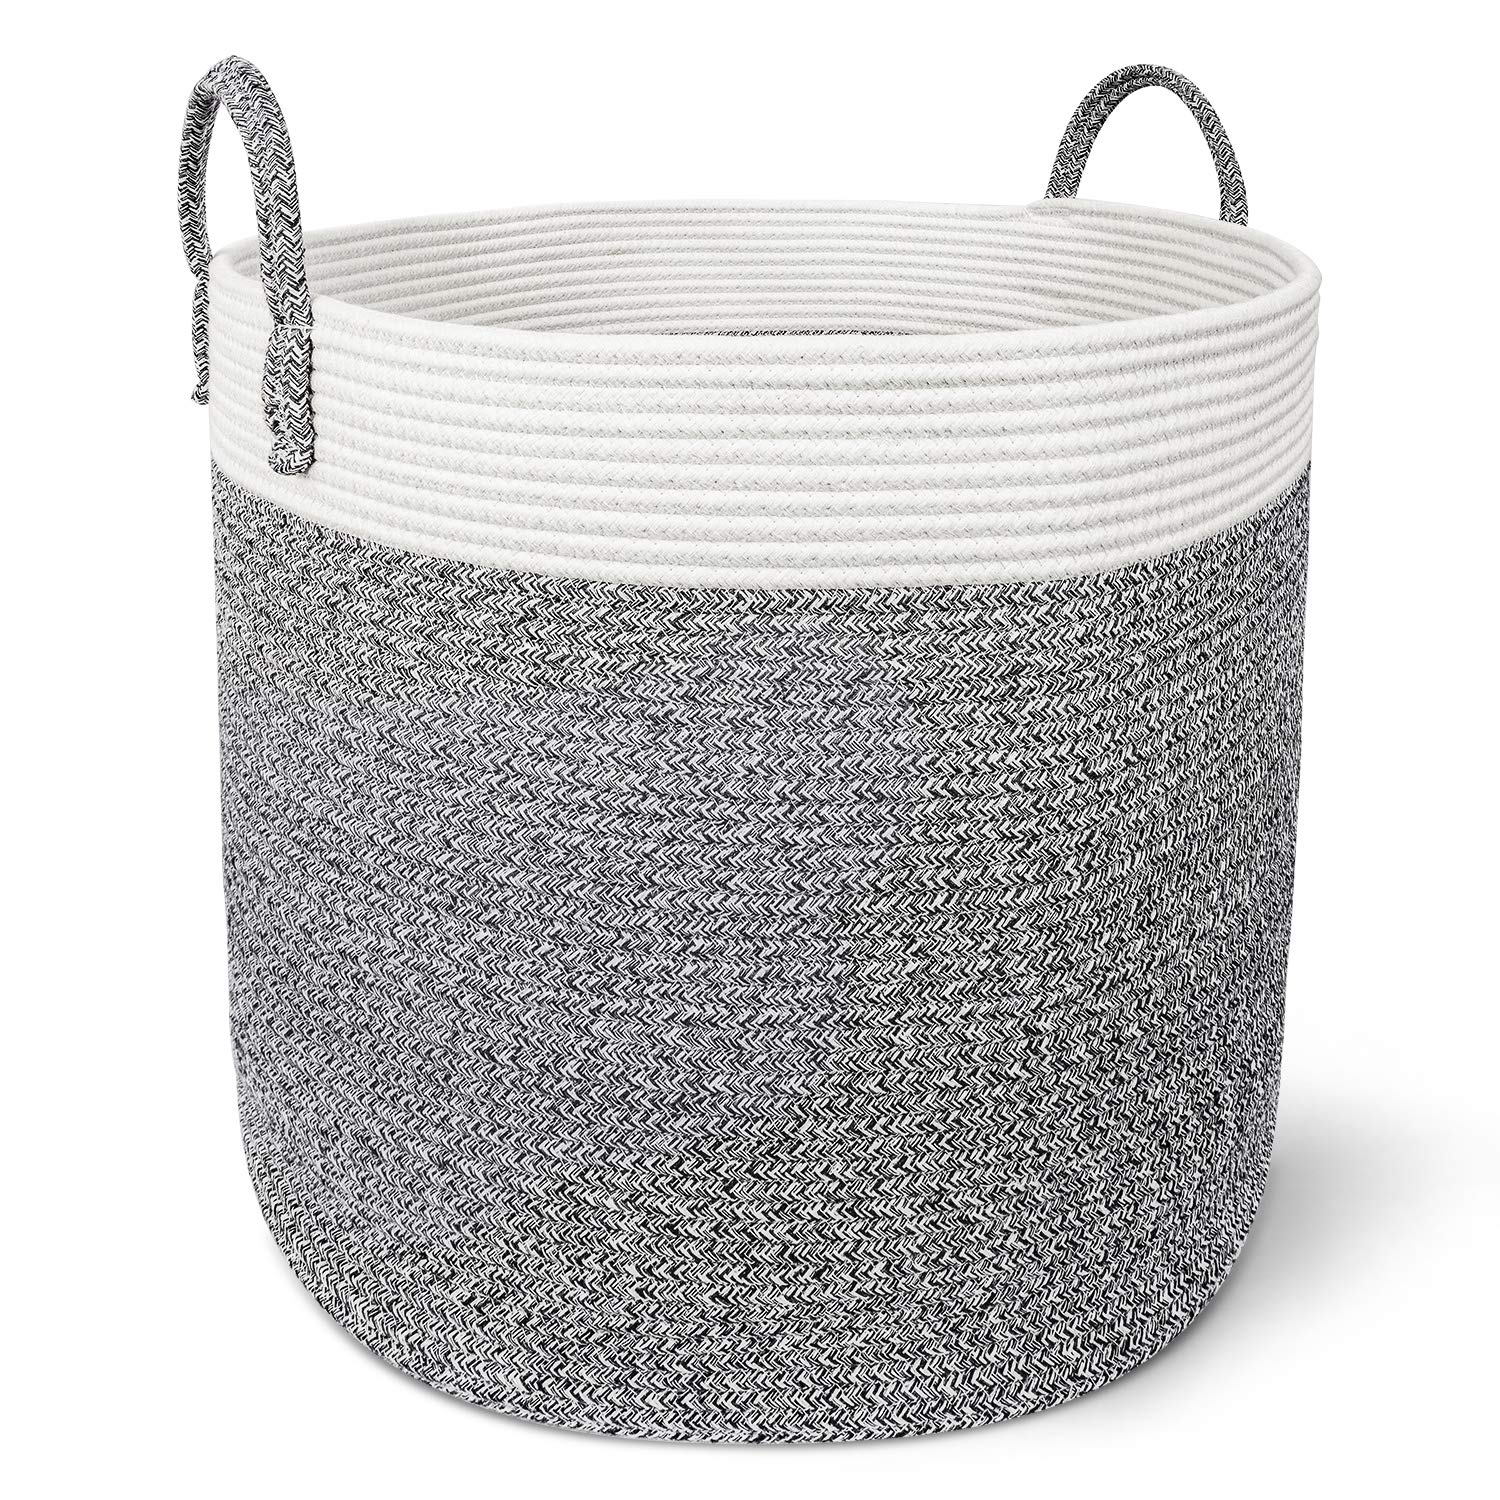 "X-Large Cotton Rope Basket – 18""x18"" Decorative Woven Basket for Laundry, Baby, Blanket, Home Storage Container (Grey)"